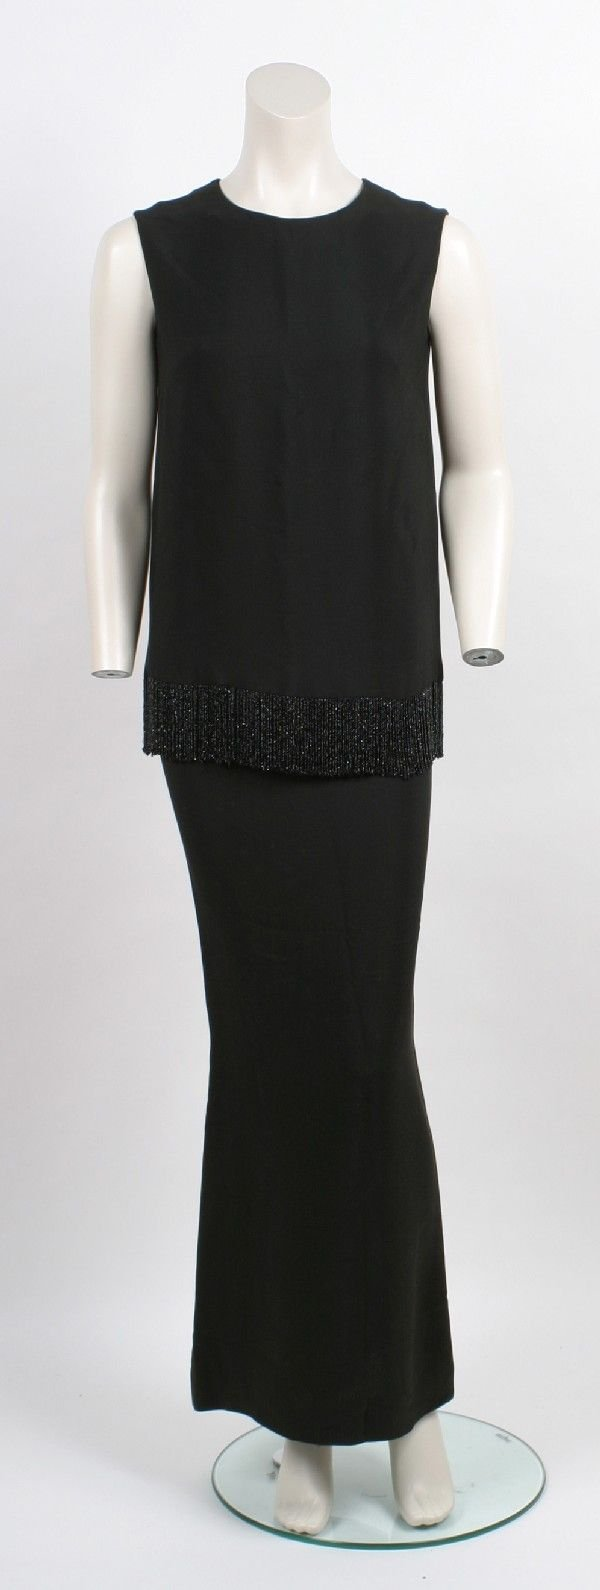 5: Norman Norell Black Silk Crepe Evening Ensemble